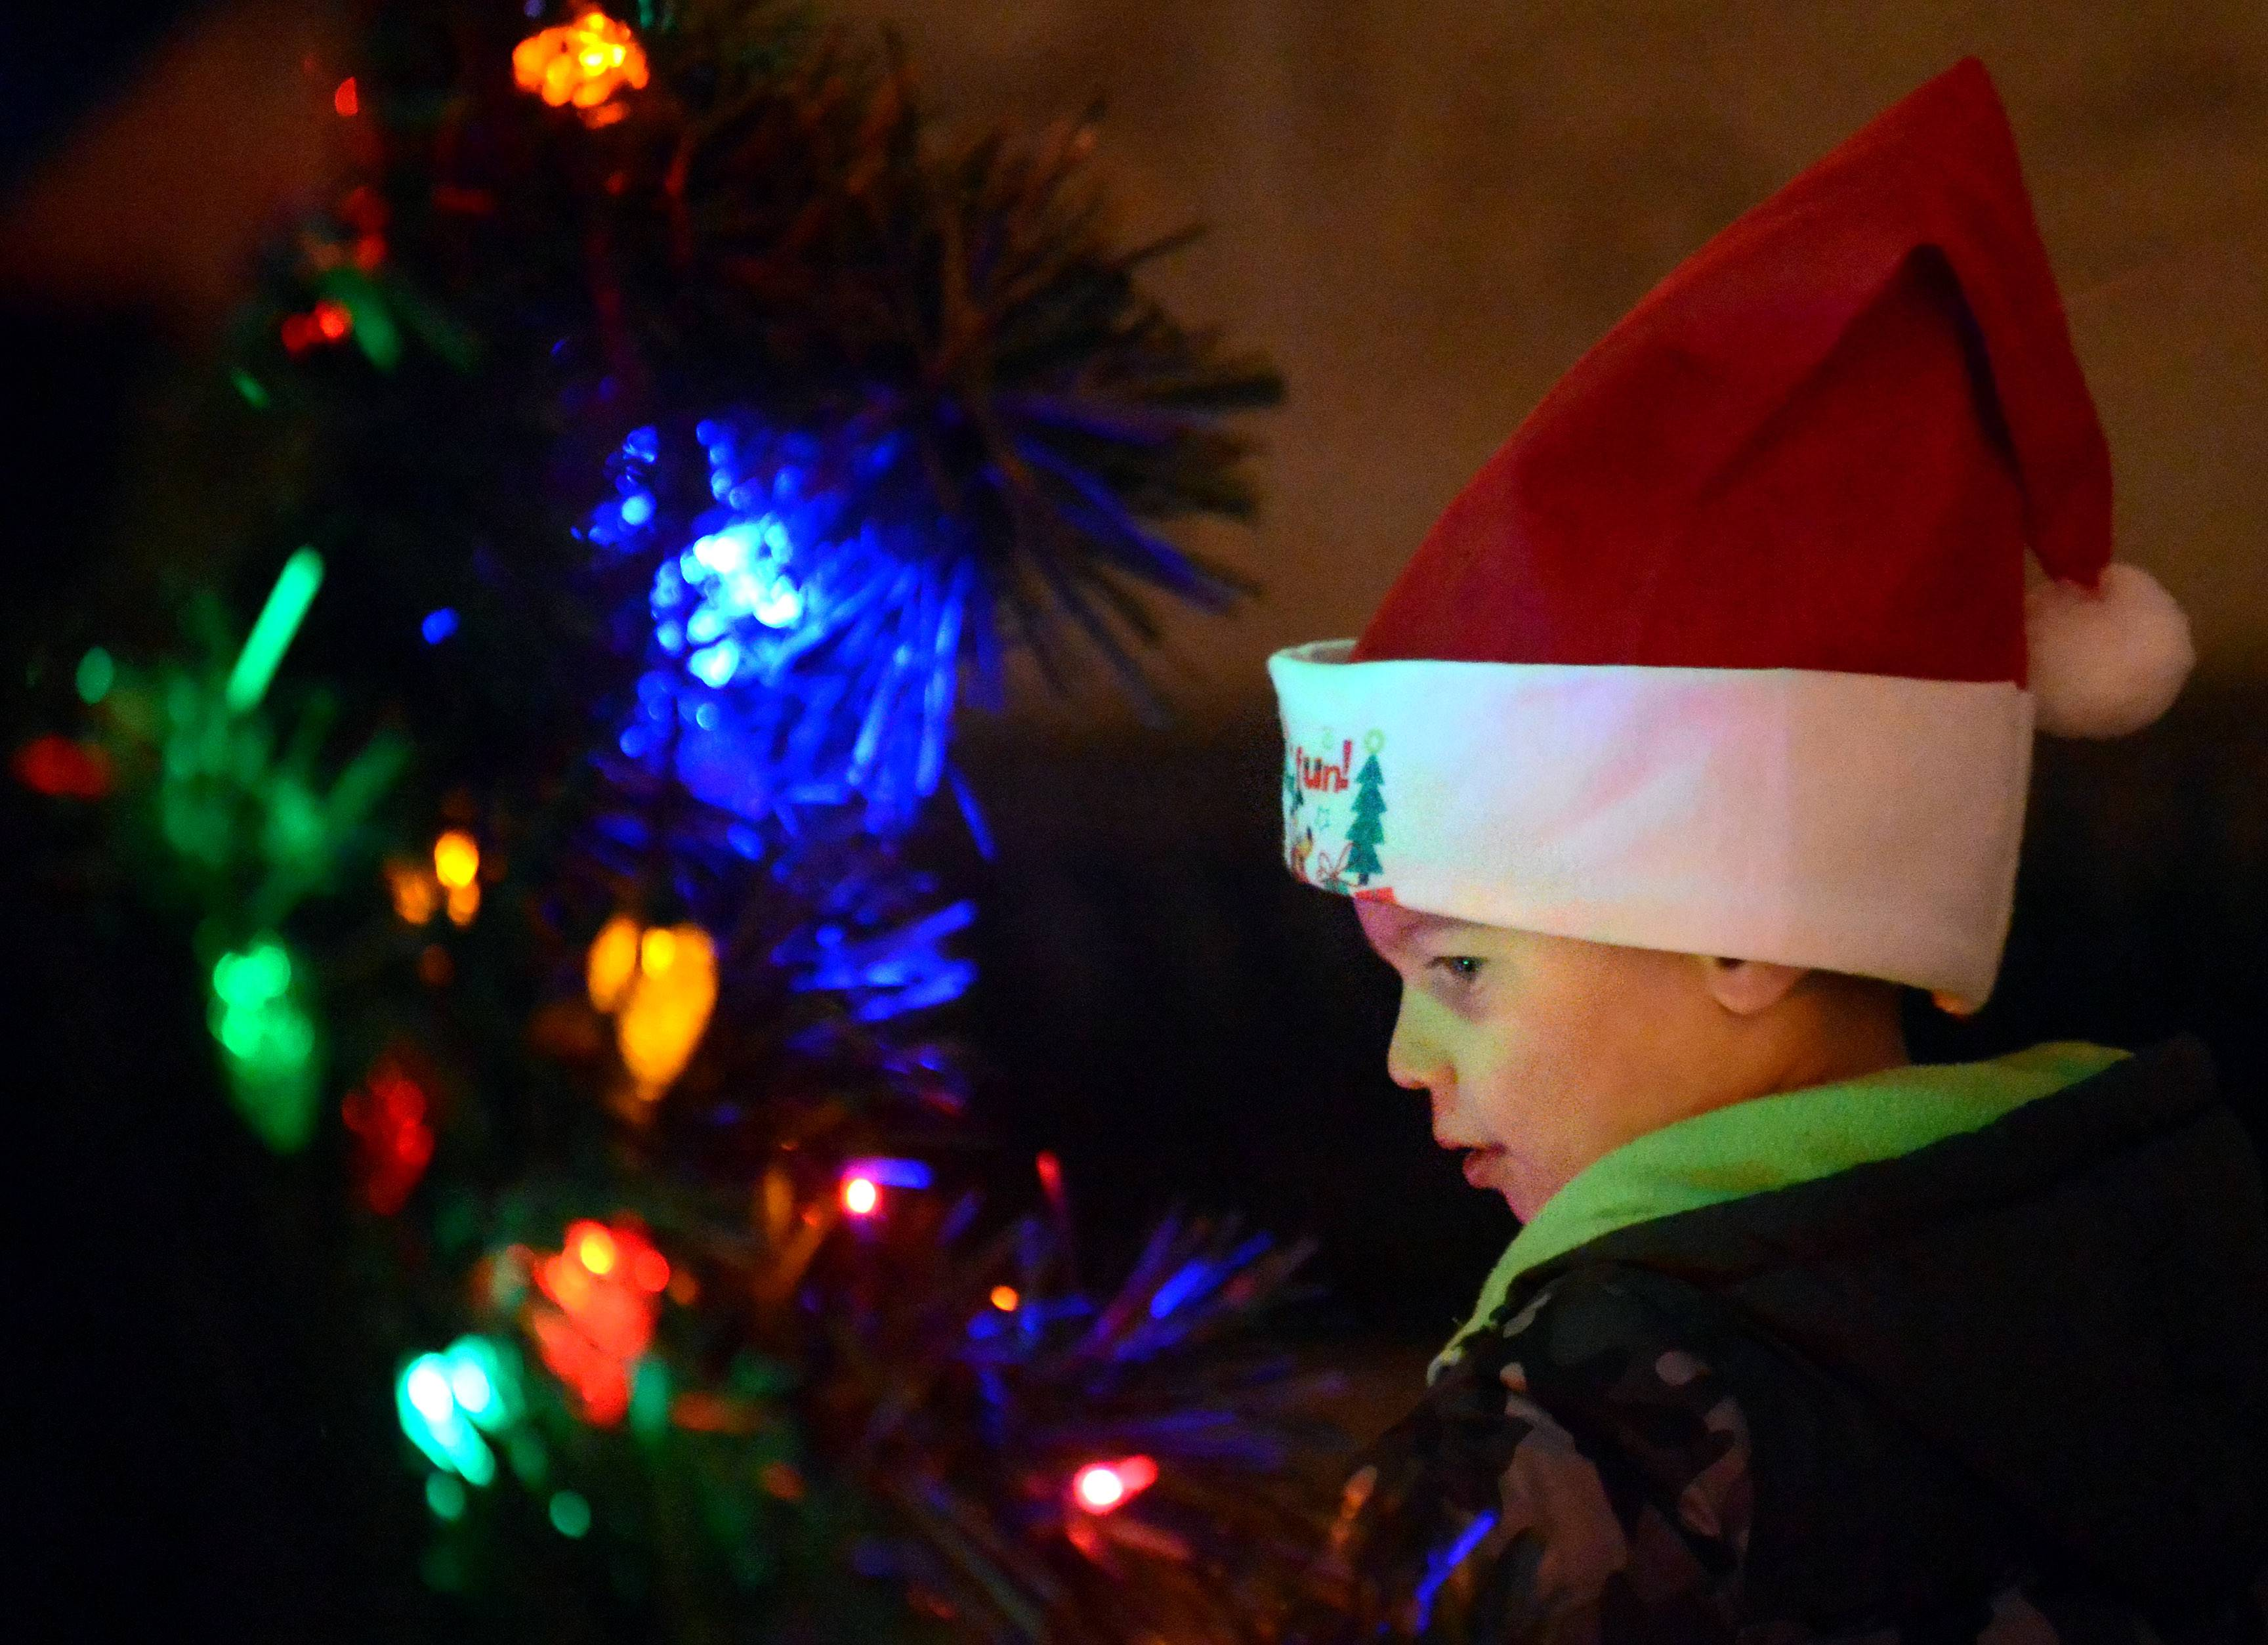 Colton Leonhardt, 2, of St. Charles checks out the Christmas tree near Santa's cottage during the Holiday Homecoming in St. Charles Friday. He came last year to see Santa and brought along little brother, Logan, 1, this year.